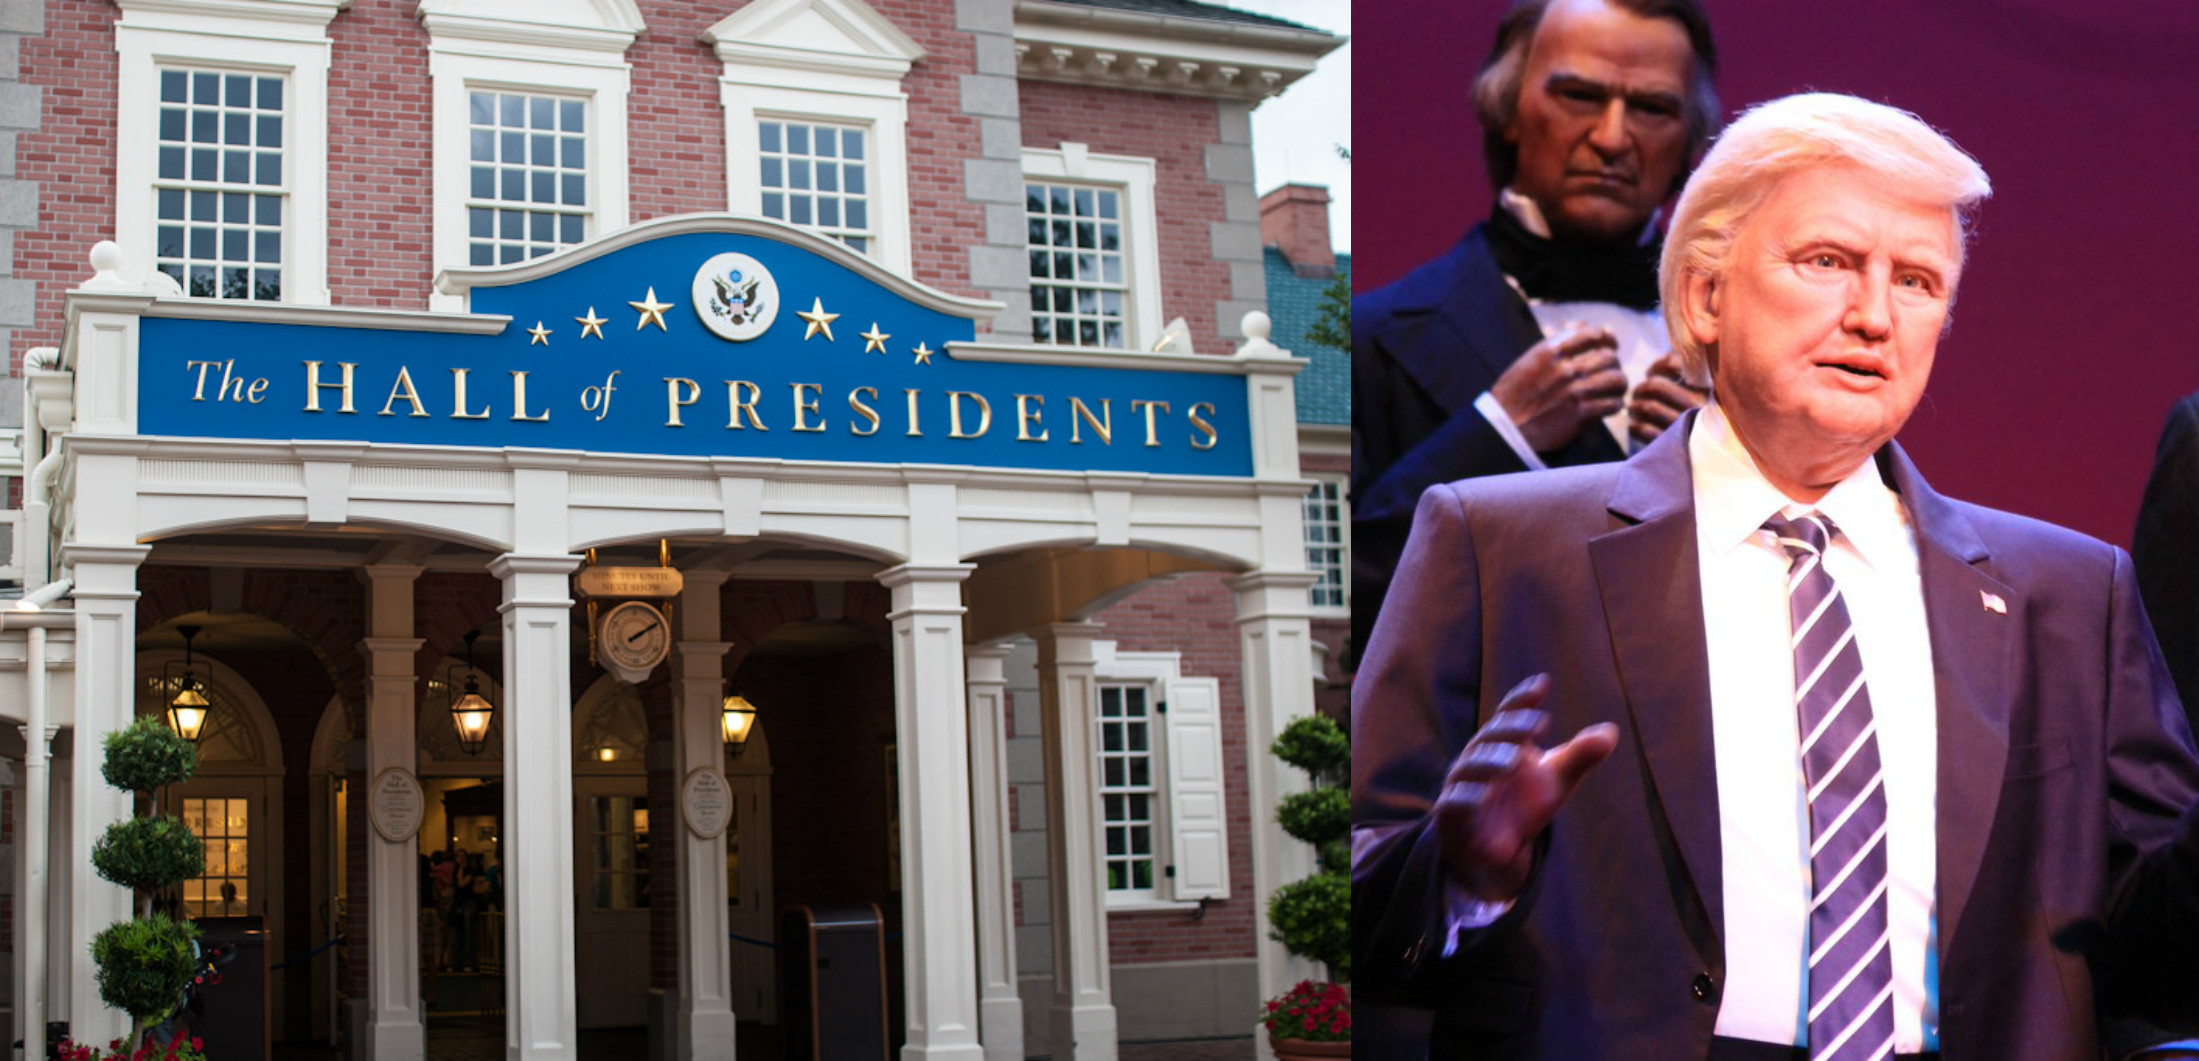 Disney just unveiled Donald Trump in the Hall of Presidents, and this is straight out of my nightmares